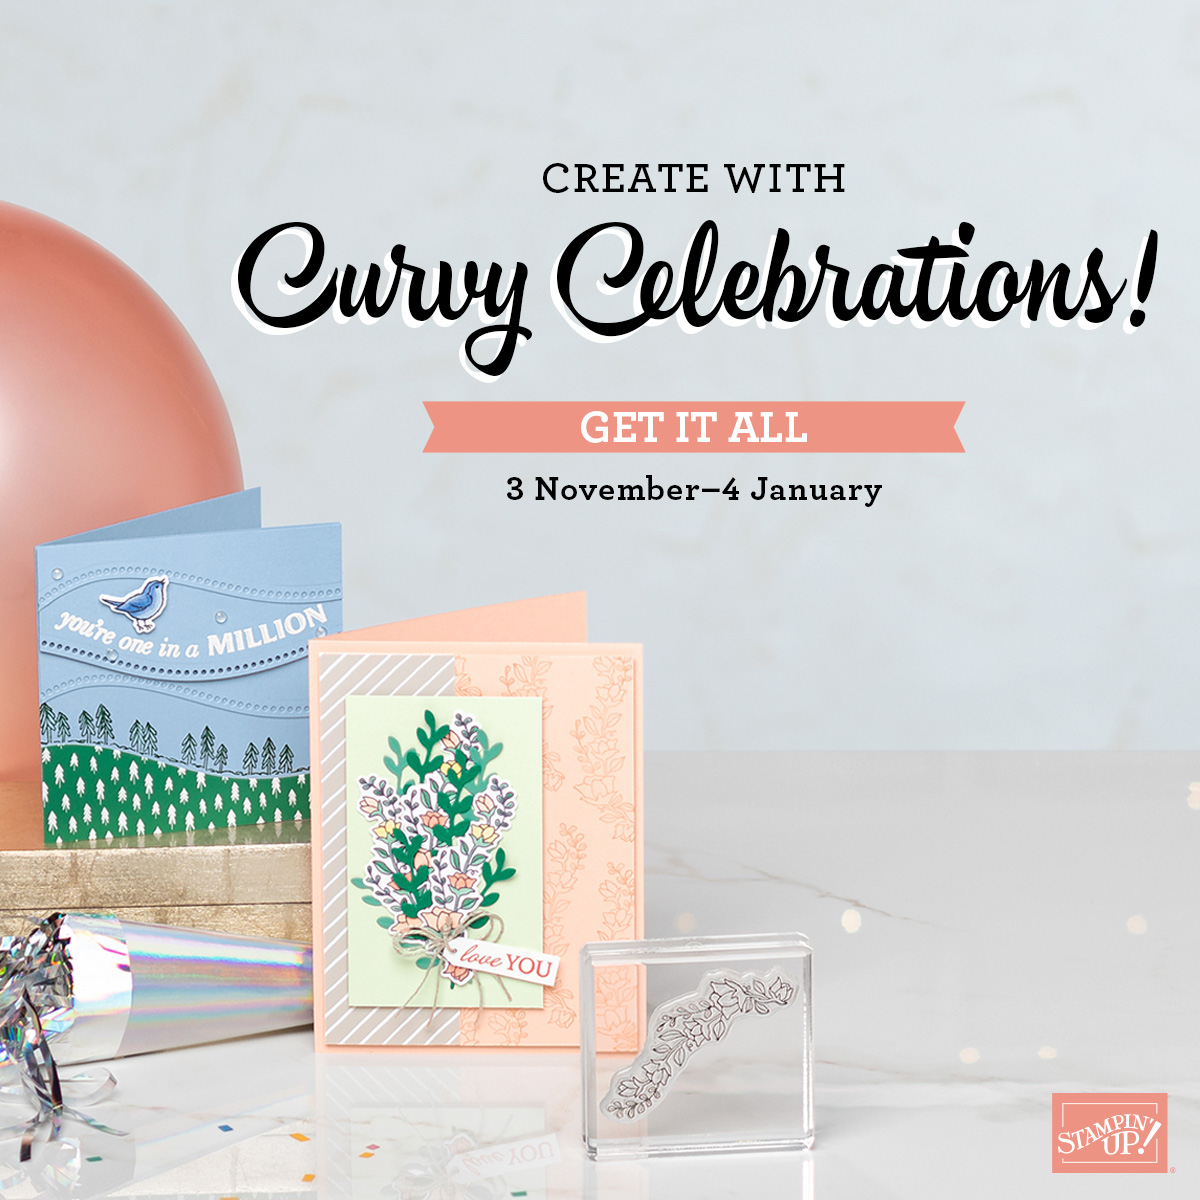 curvy celebrations is here!